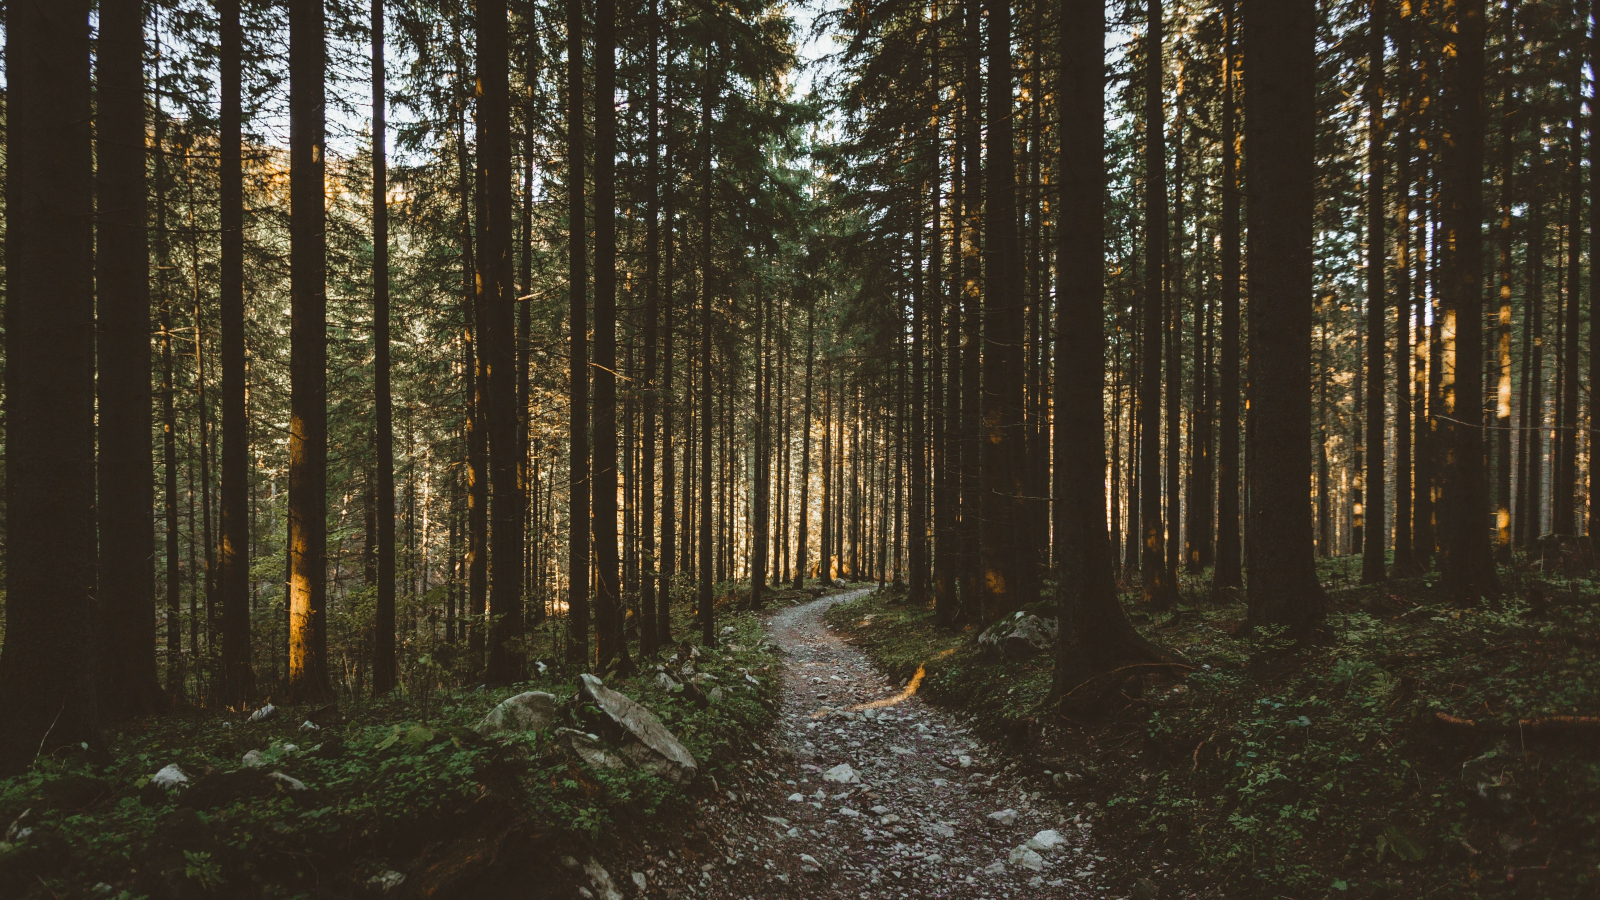 Download 1600x900 Wallpaper Sunbeams Morning Forest